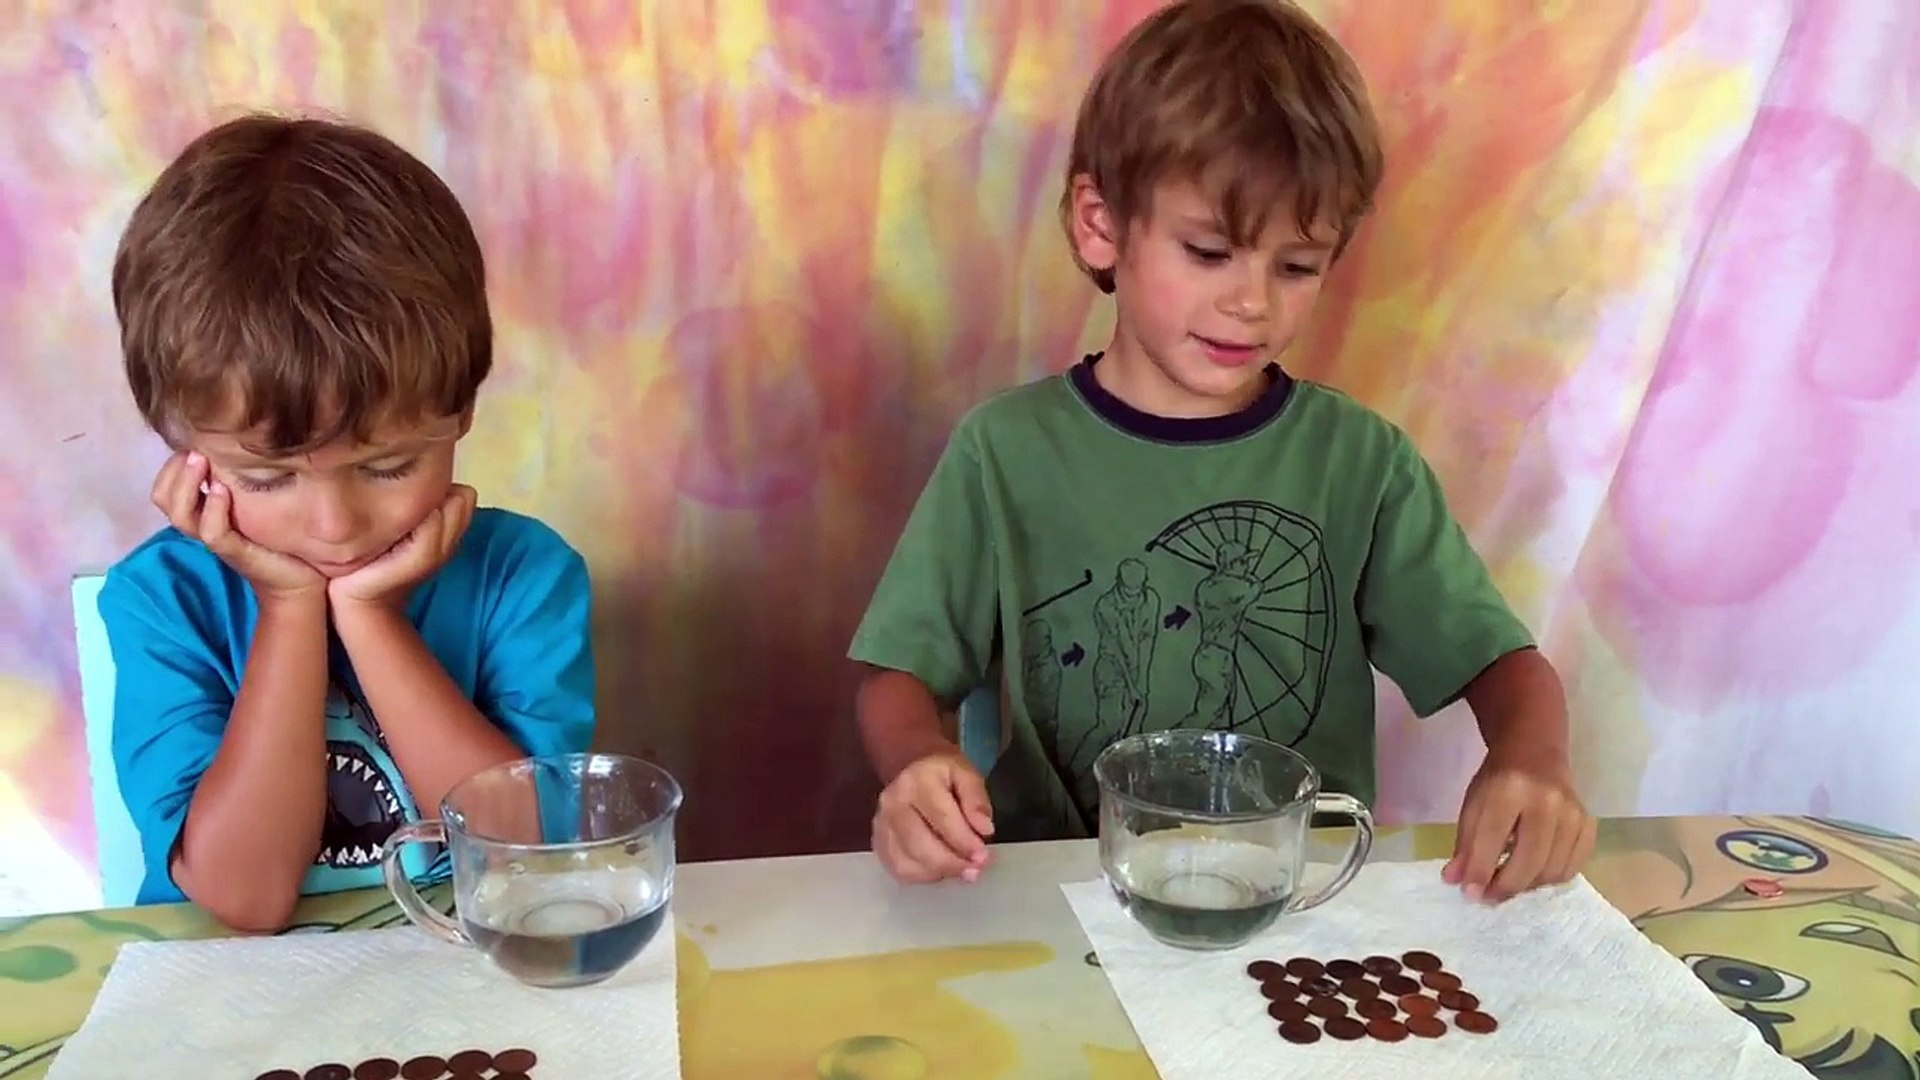 Cleaning Pennies - Simple Science For Kids - Indoor Kids Activity!